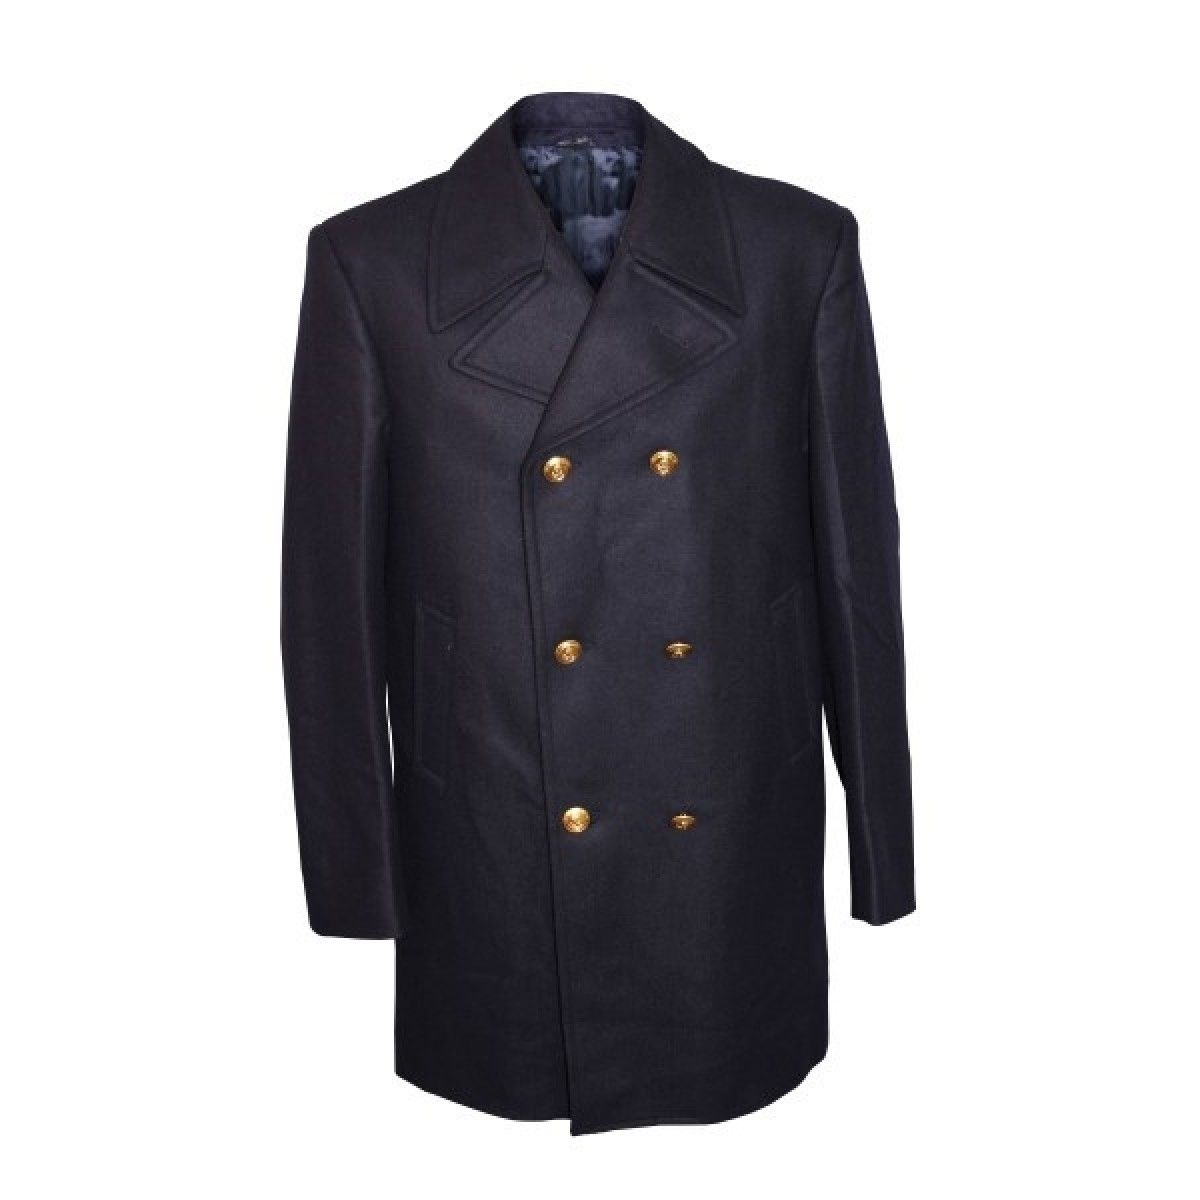 NEW ITALIAN NAVY PEACOAT | Wool keeps you warm, even when wet ...